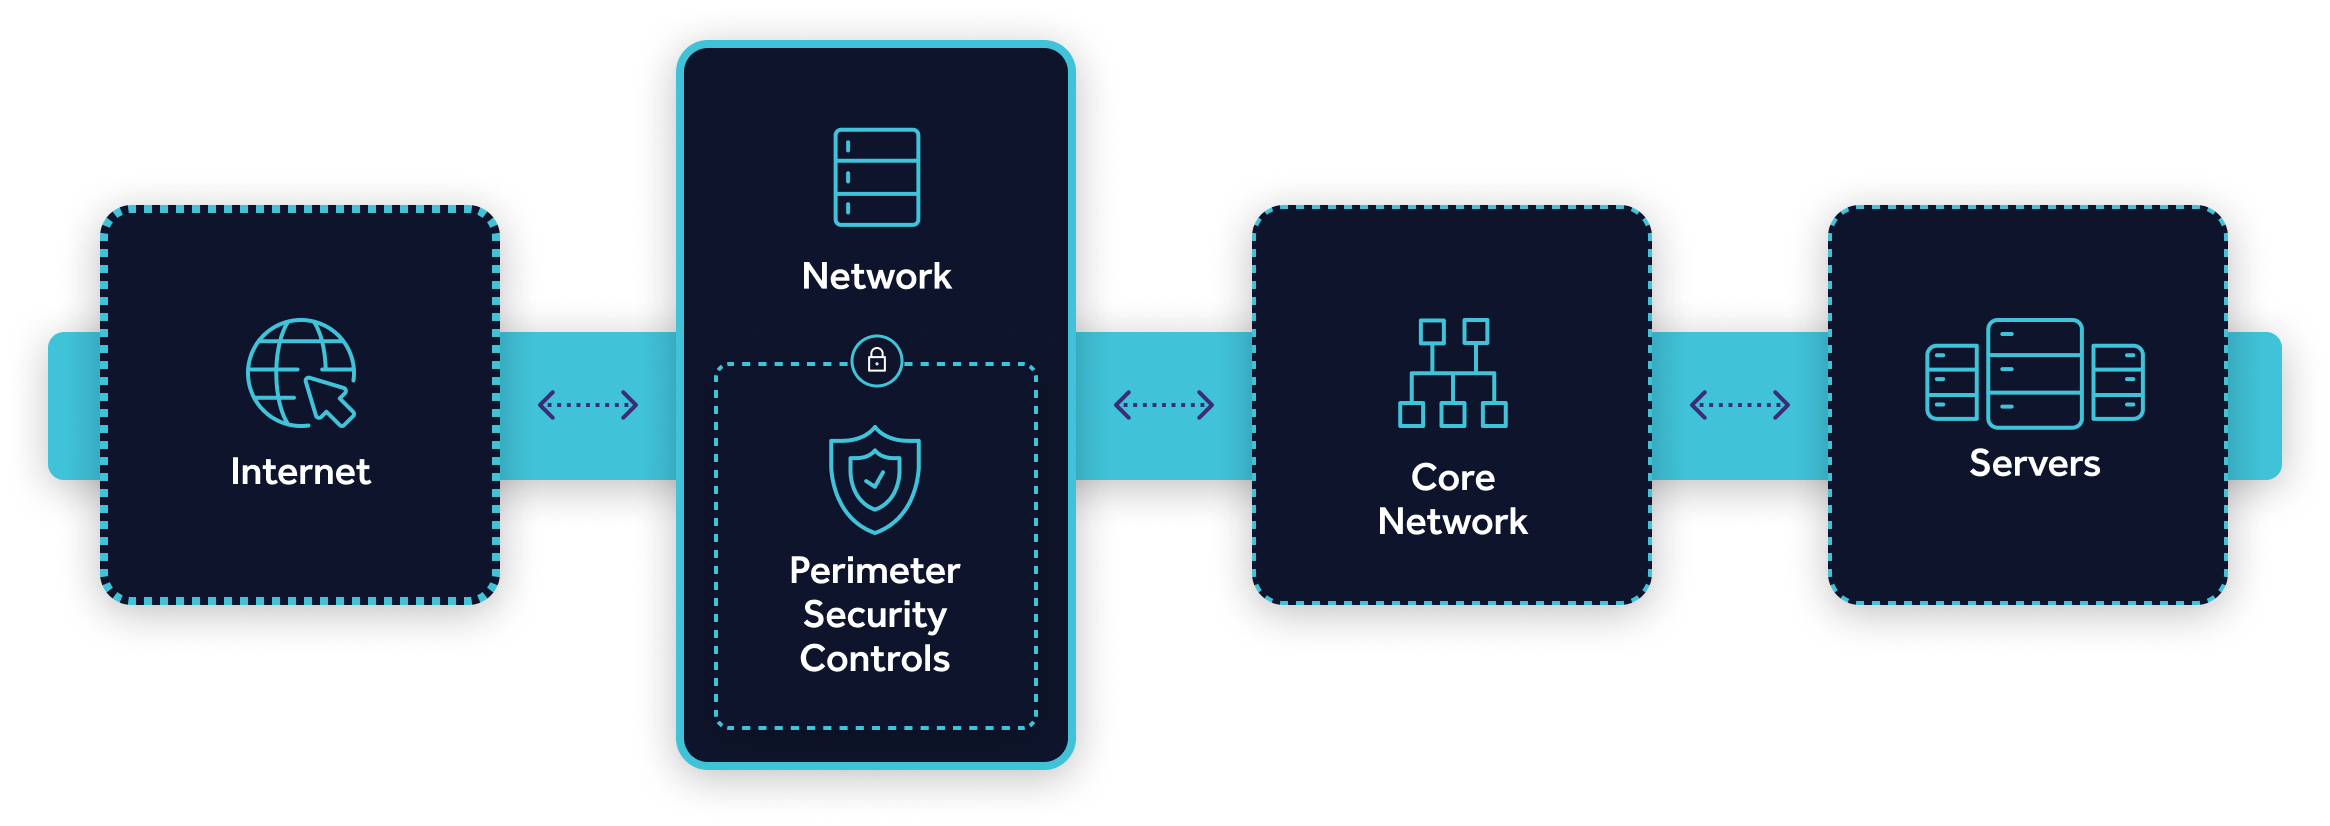 How it works network